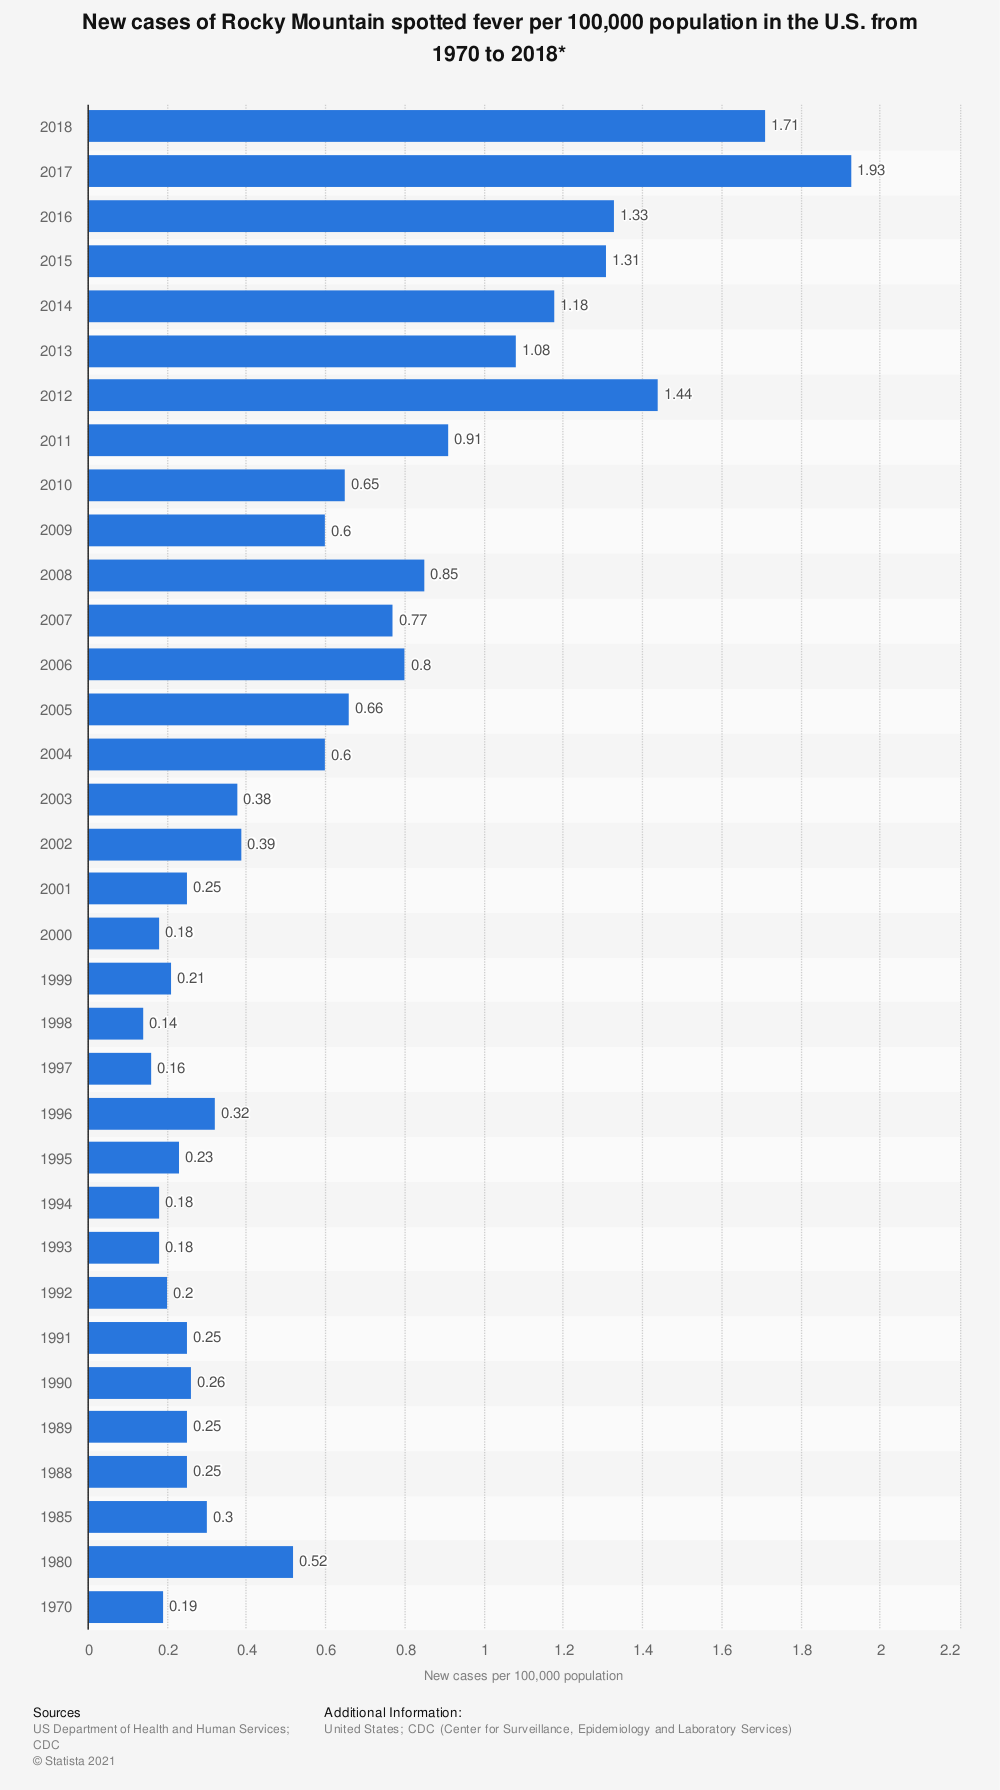 Statistic: New cases of Rocky Mountain spotted fever per 100,000 population in the U.S. from 1970 to 2017* | Statista